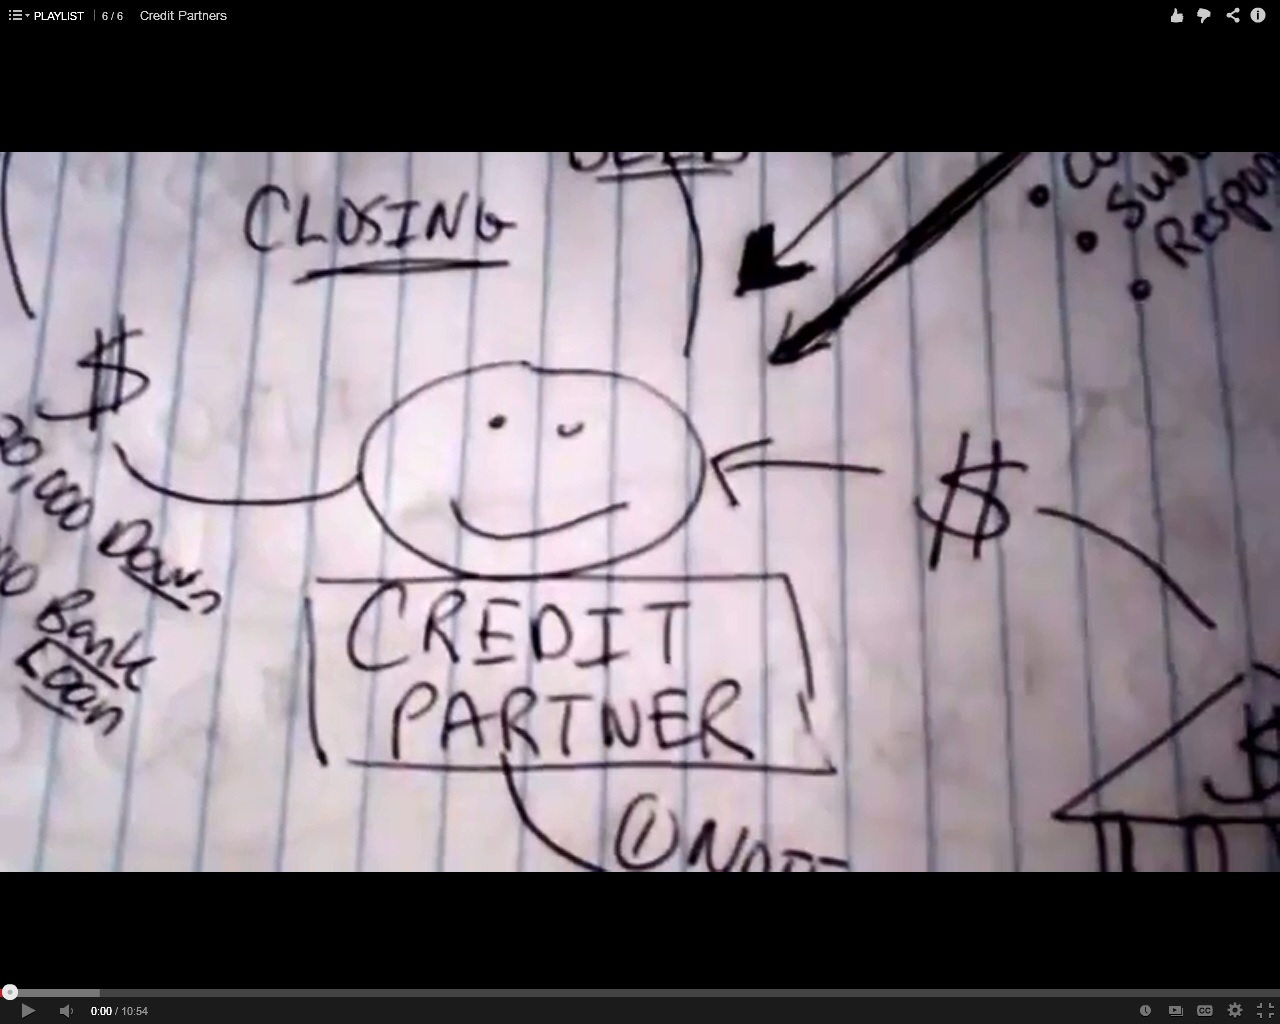 Credit Partner - How to Do Deals With a Partner's Credit & Cash